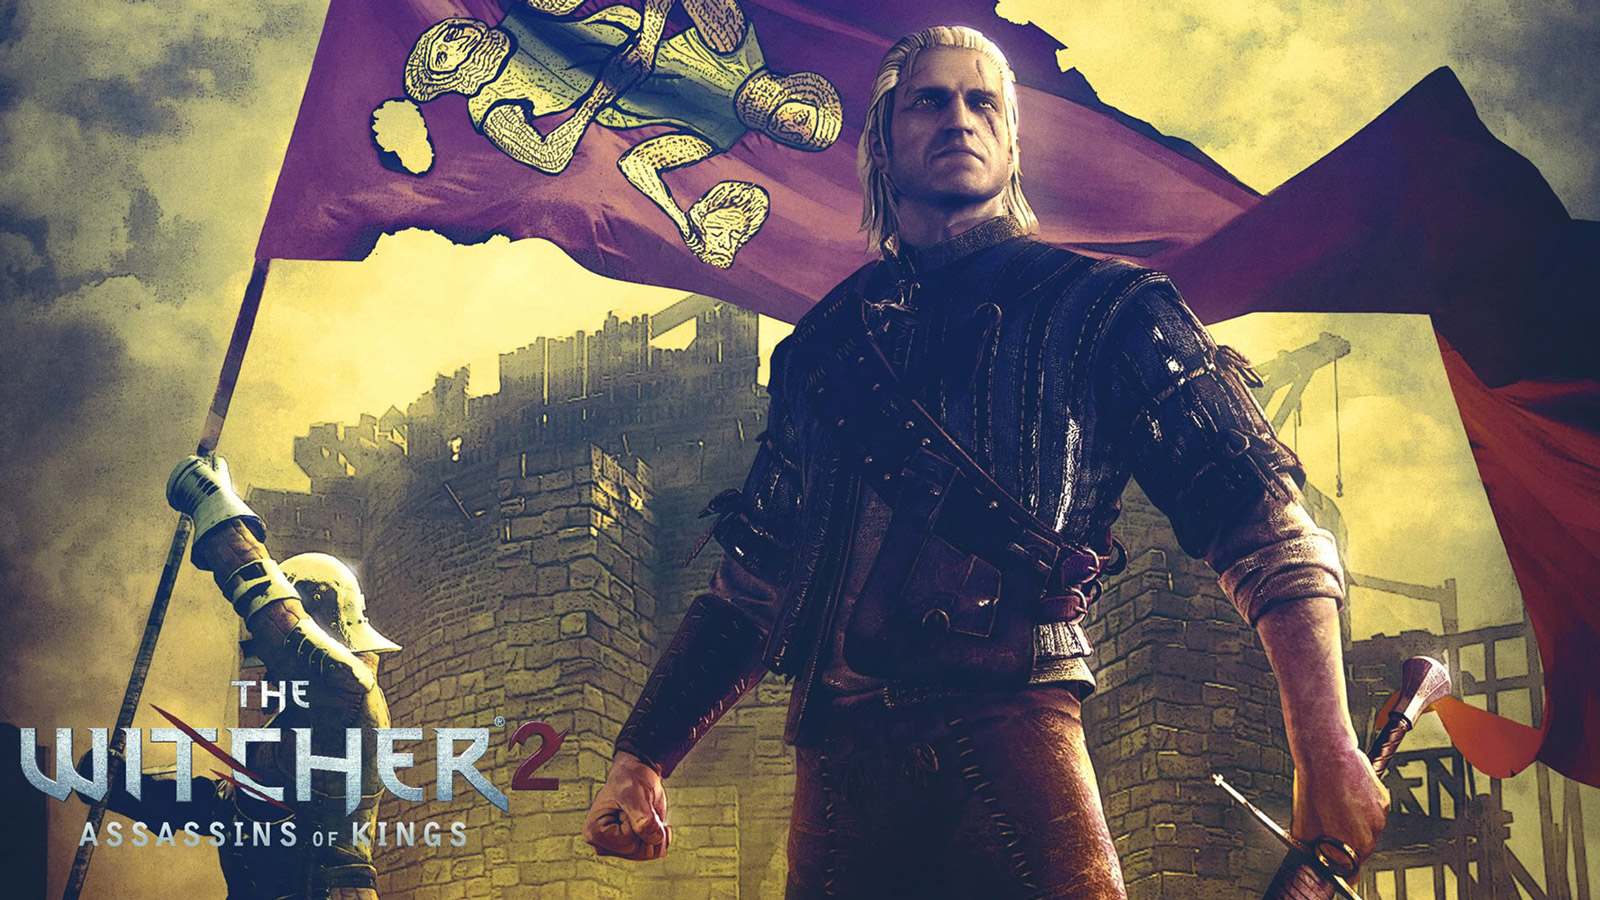 Free The Witcher 2 Wallpaper in 1600x900